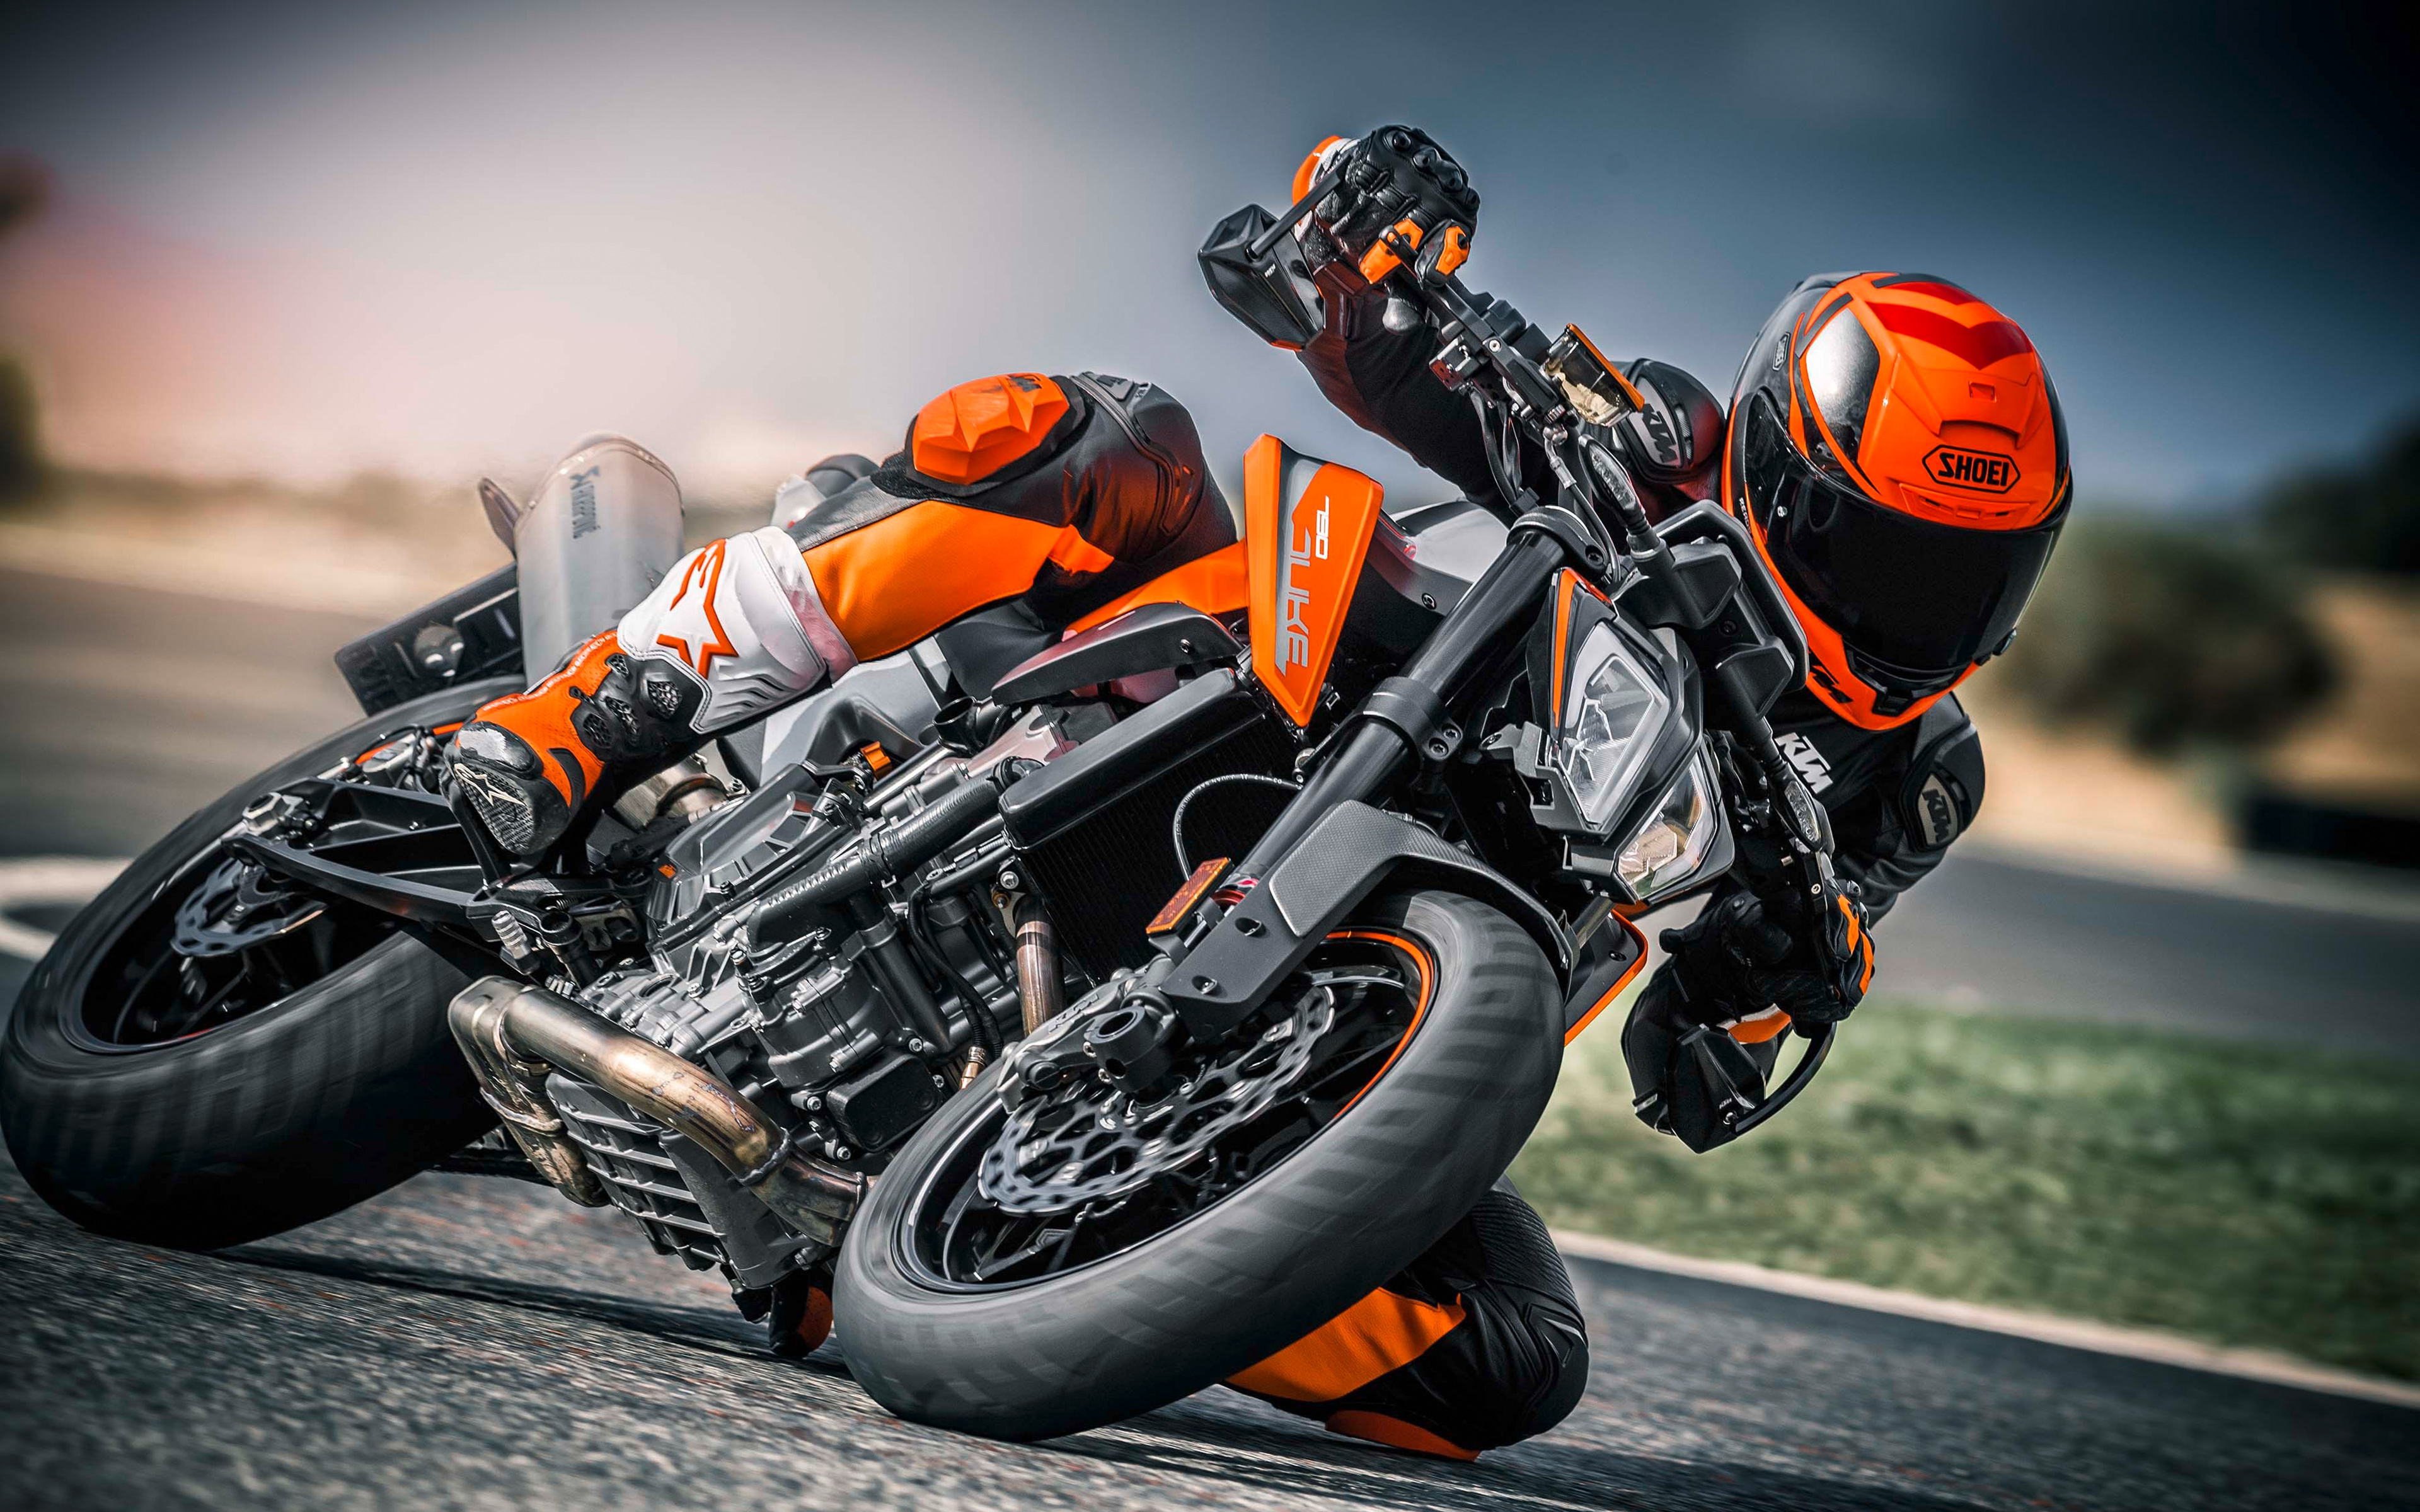 Ktm Wallpapers For Android Hd Best Hd Wallpaper